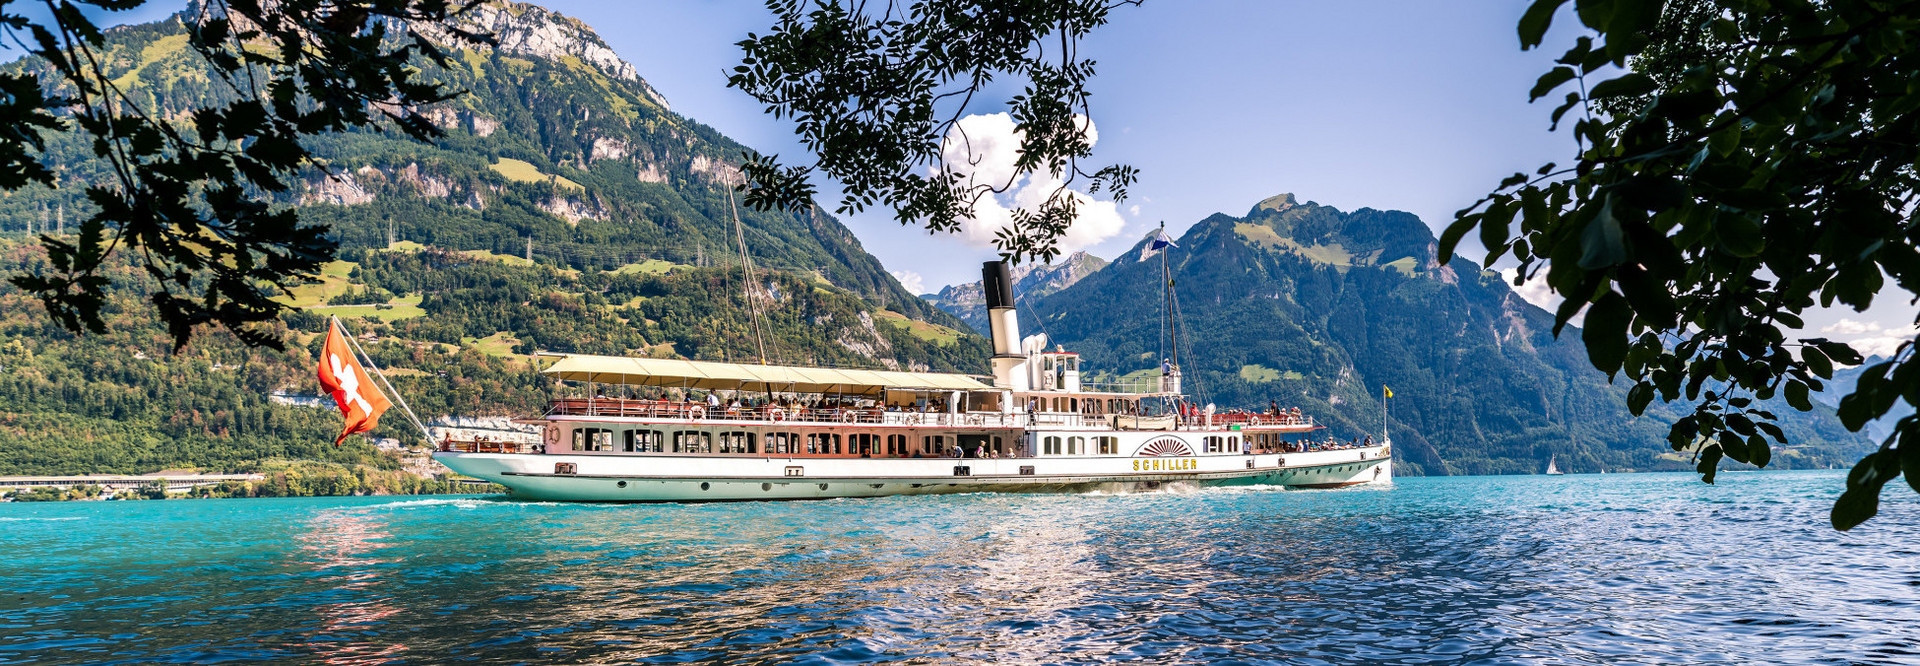 A round trip with the paddle steamer in the Lake Uri is an unforgettable experience.